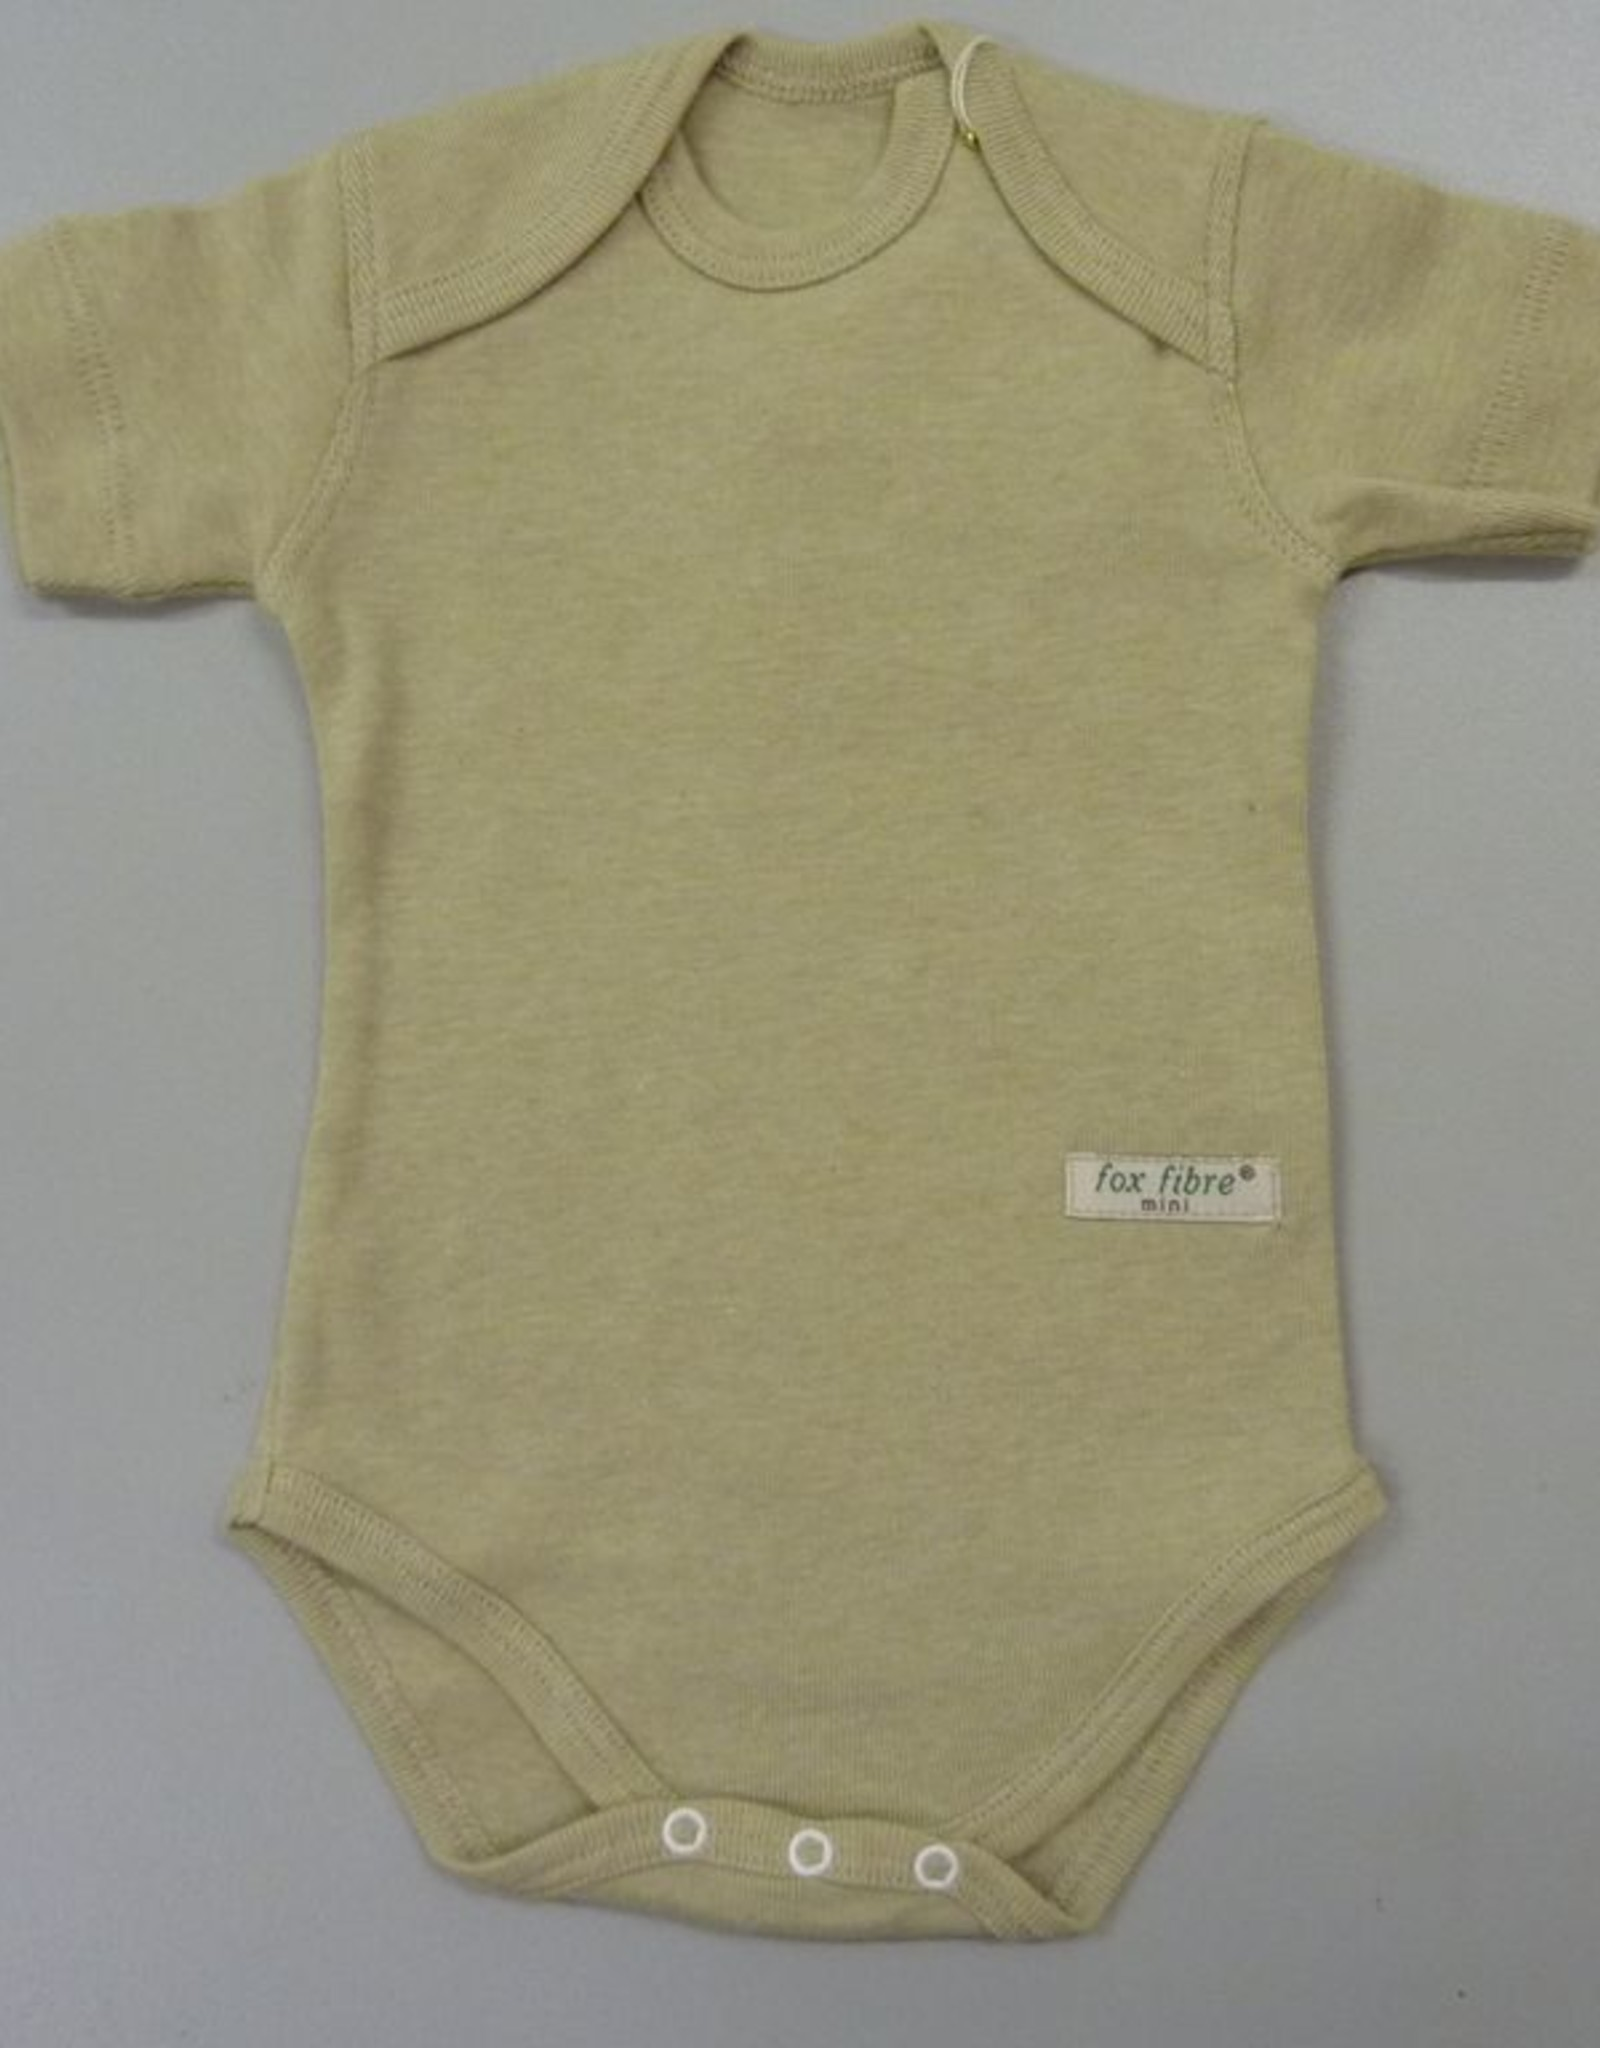 Baby body with short sleeve